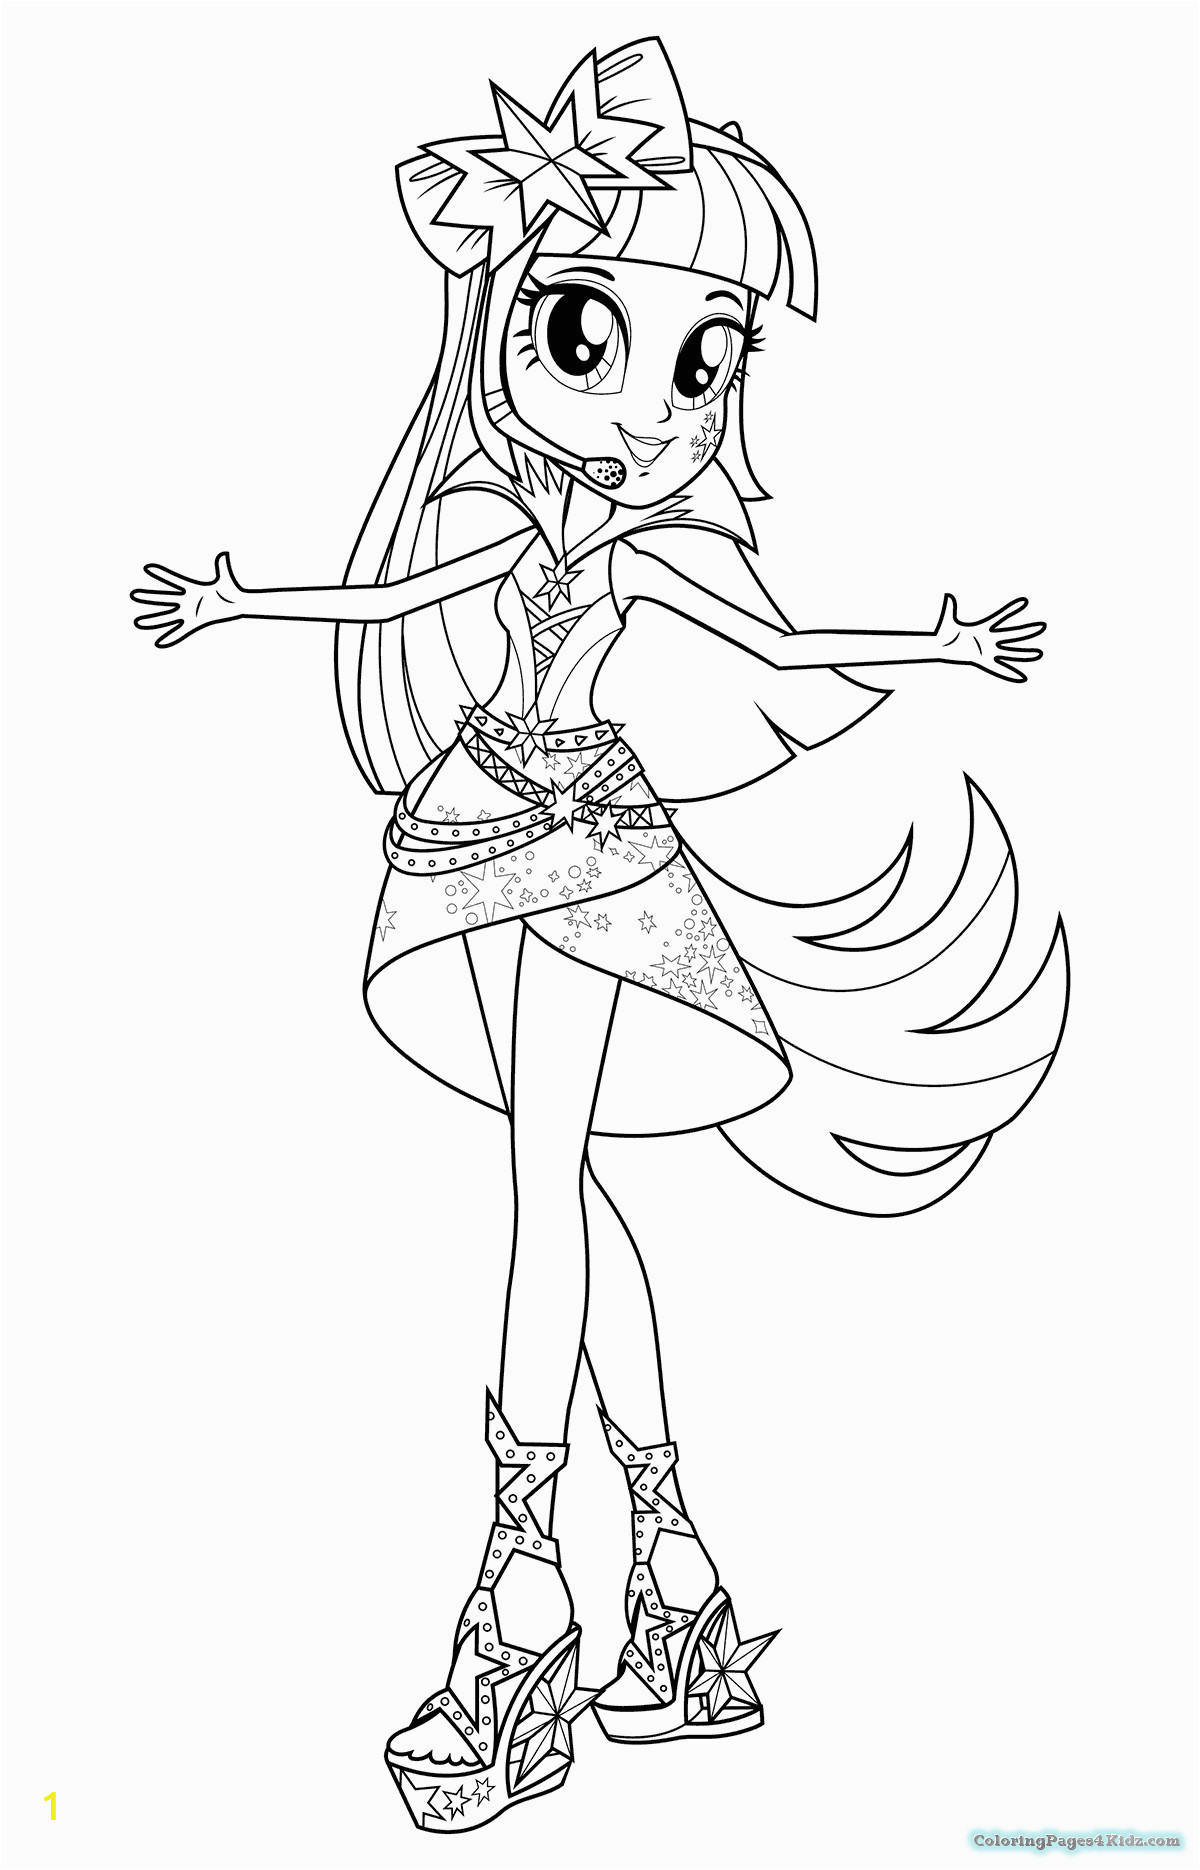 equestria girls christmas coloring pages